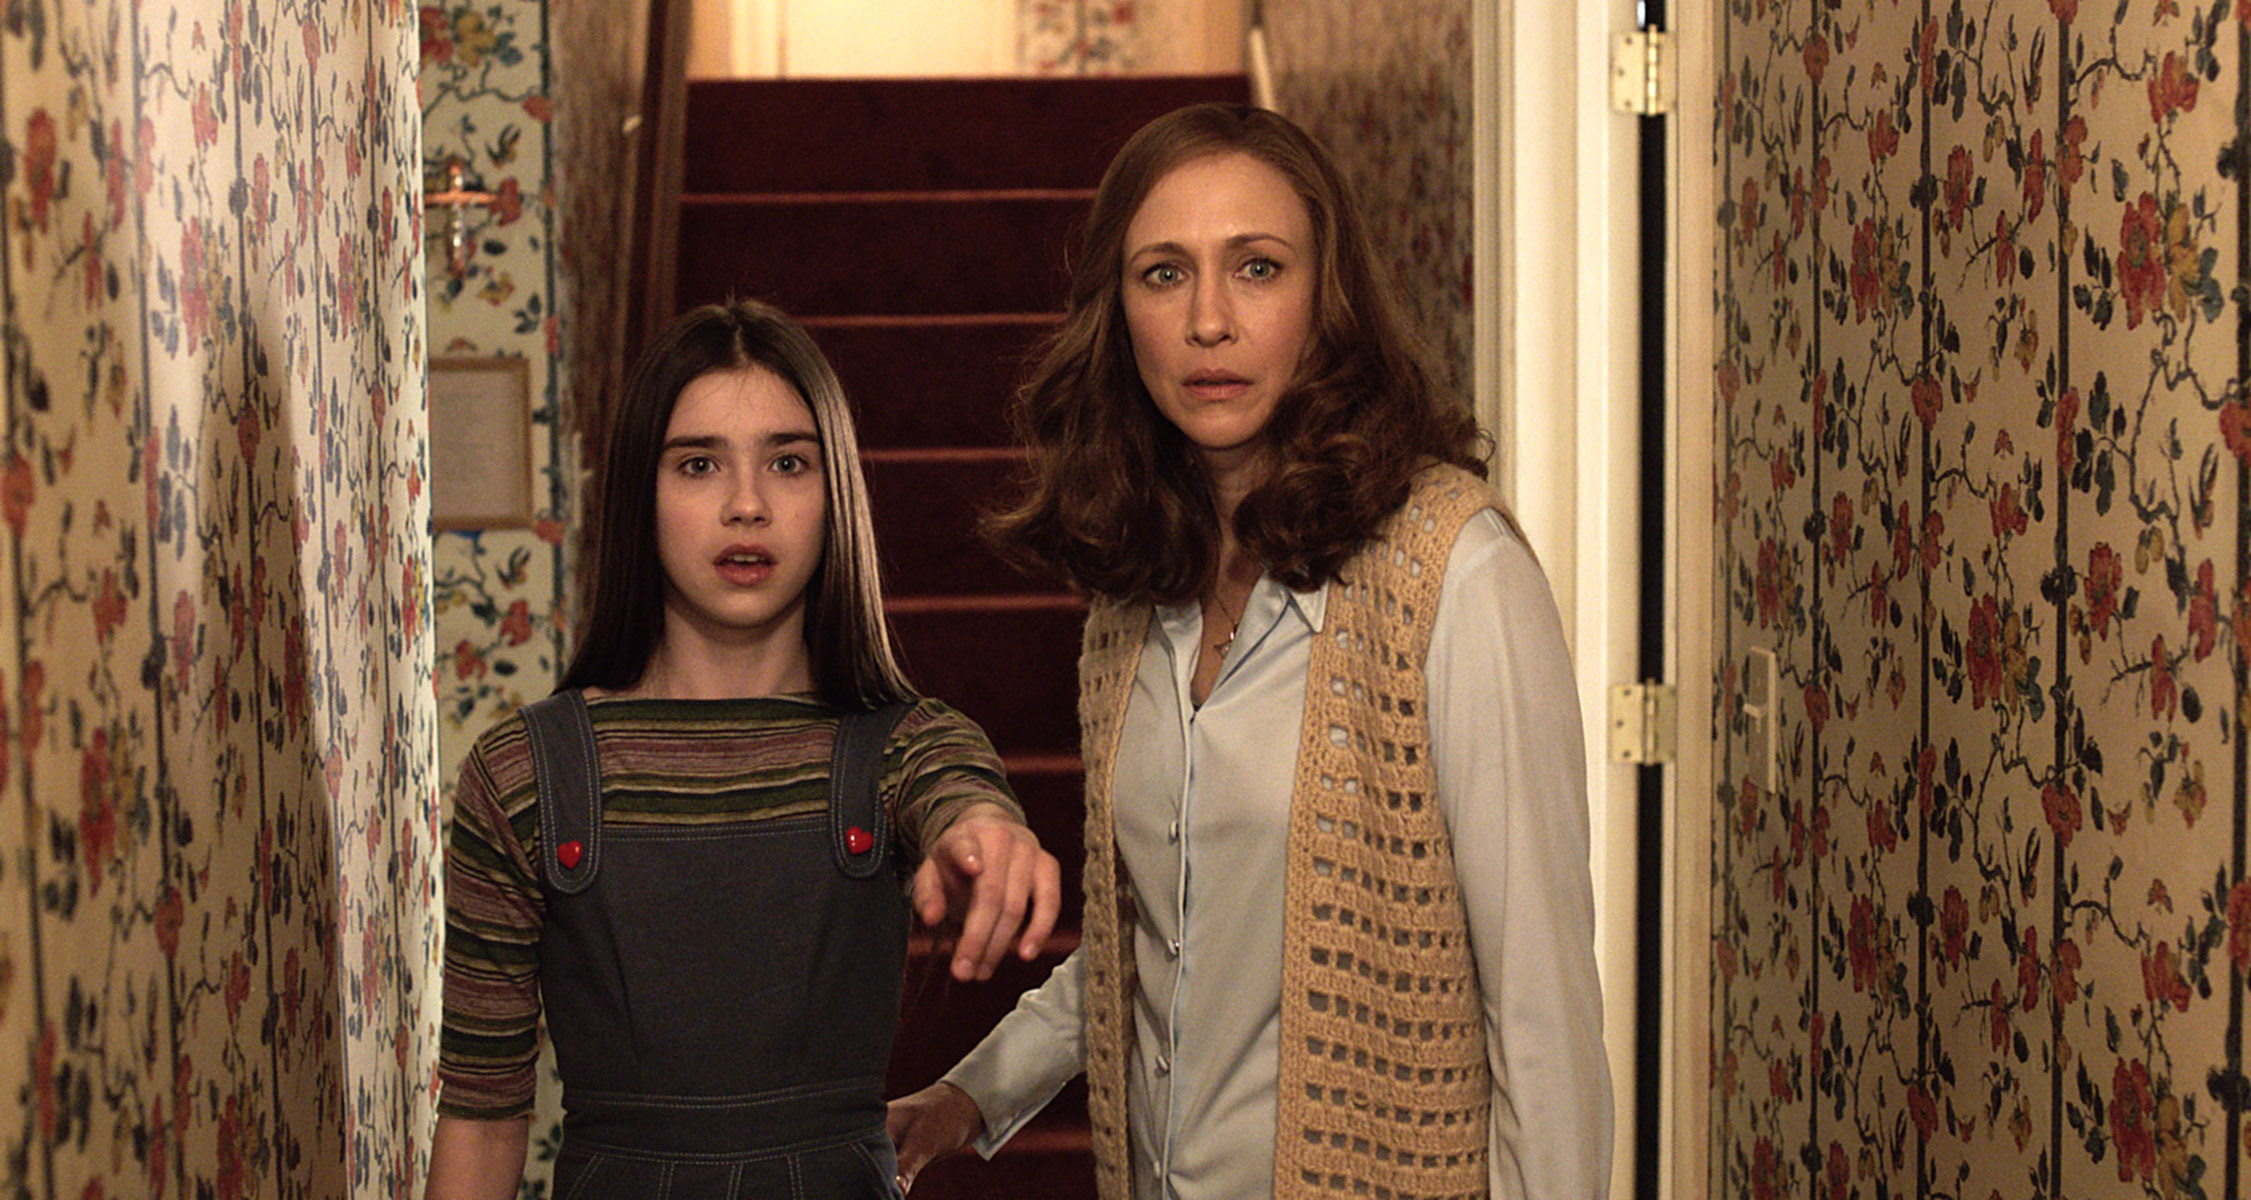 Judy and Lorraine Warren in The Conjuring 2